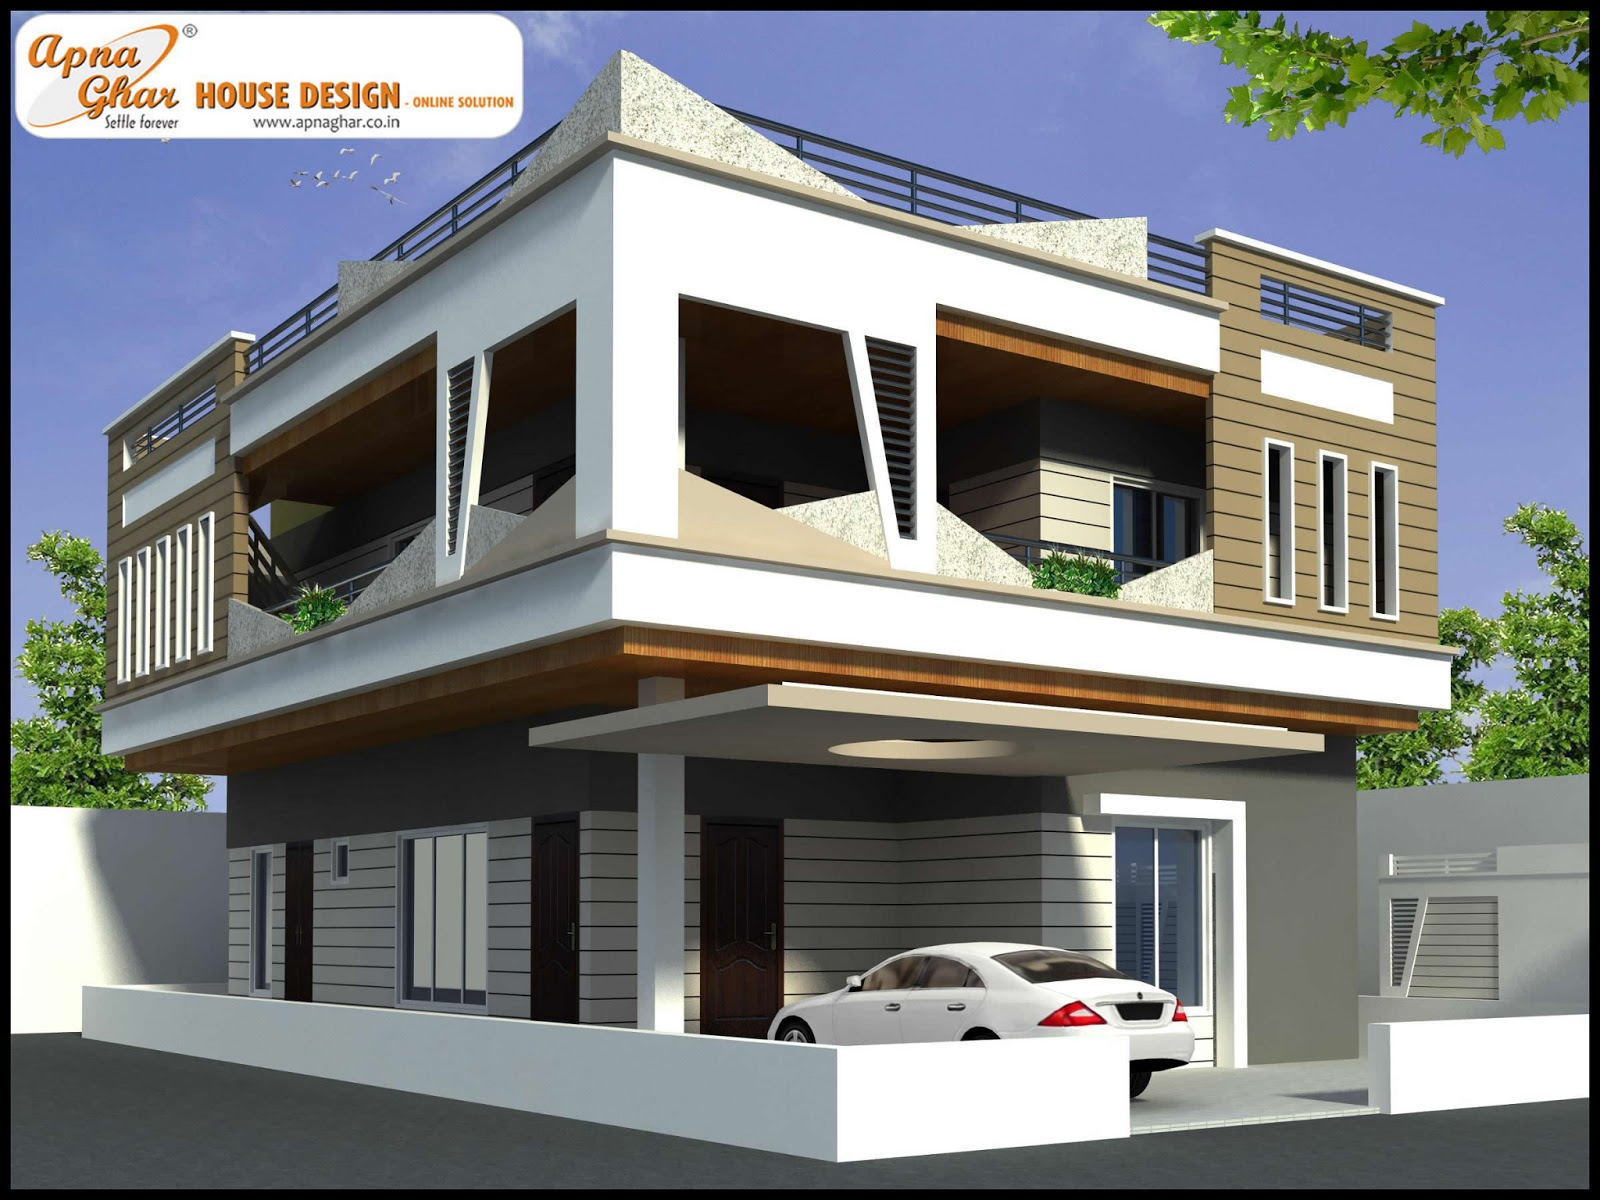 Duplex house design apnaghar house design page 3 for Duplex house models